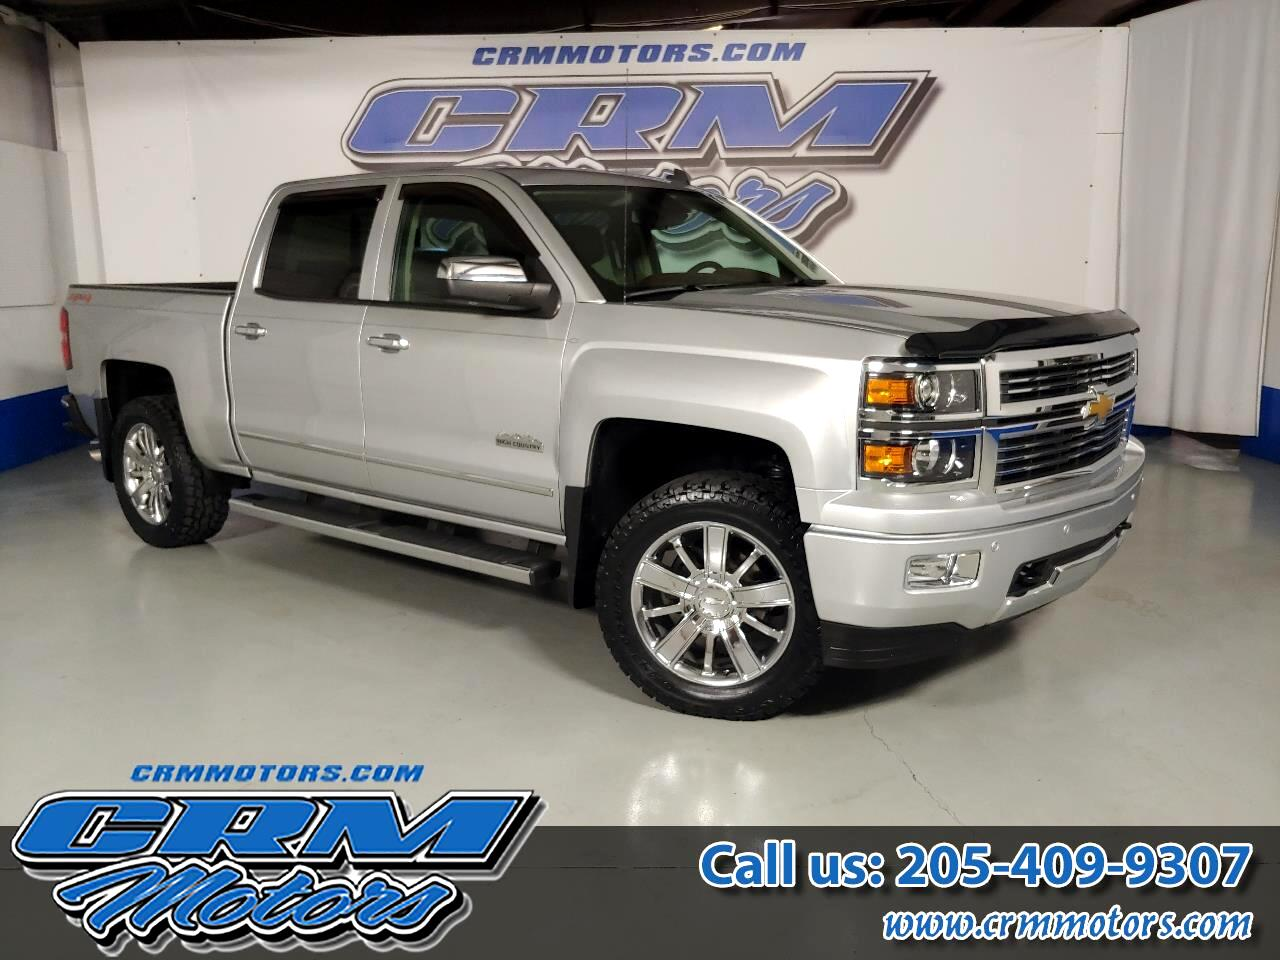 2014 Chevrolet Silverado 1500 4WD CREW CAB HIGH COUNTRY W/ EVERY OPTION!